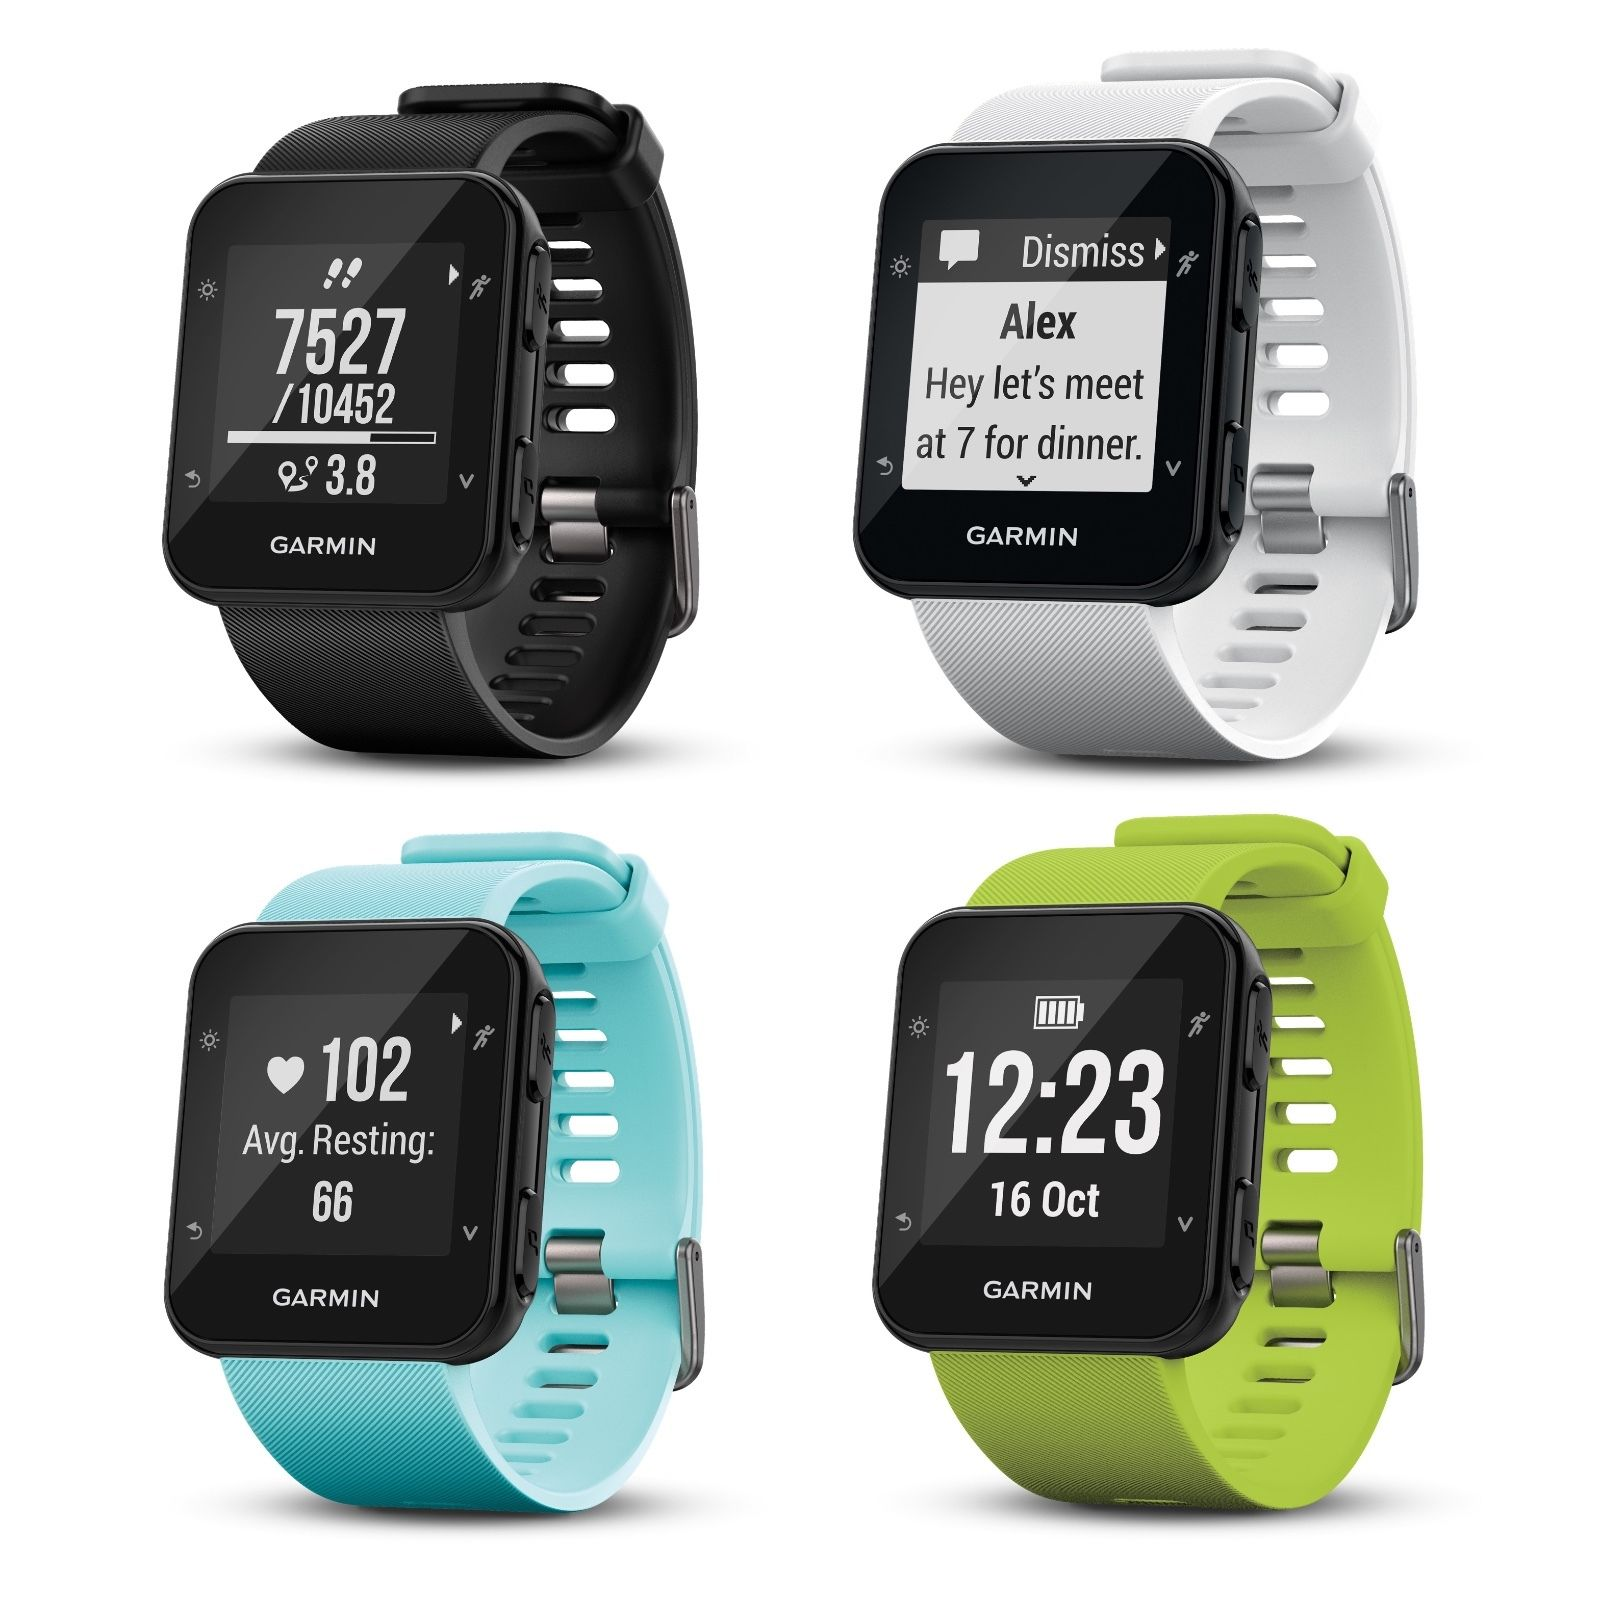 buy watches gps marsala ra garmin shop running tomtom watch forerunner site best